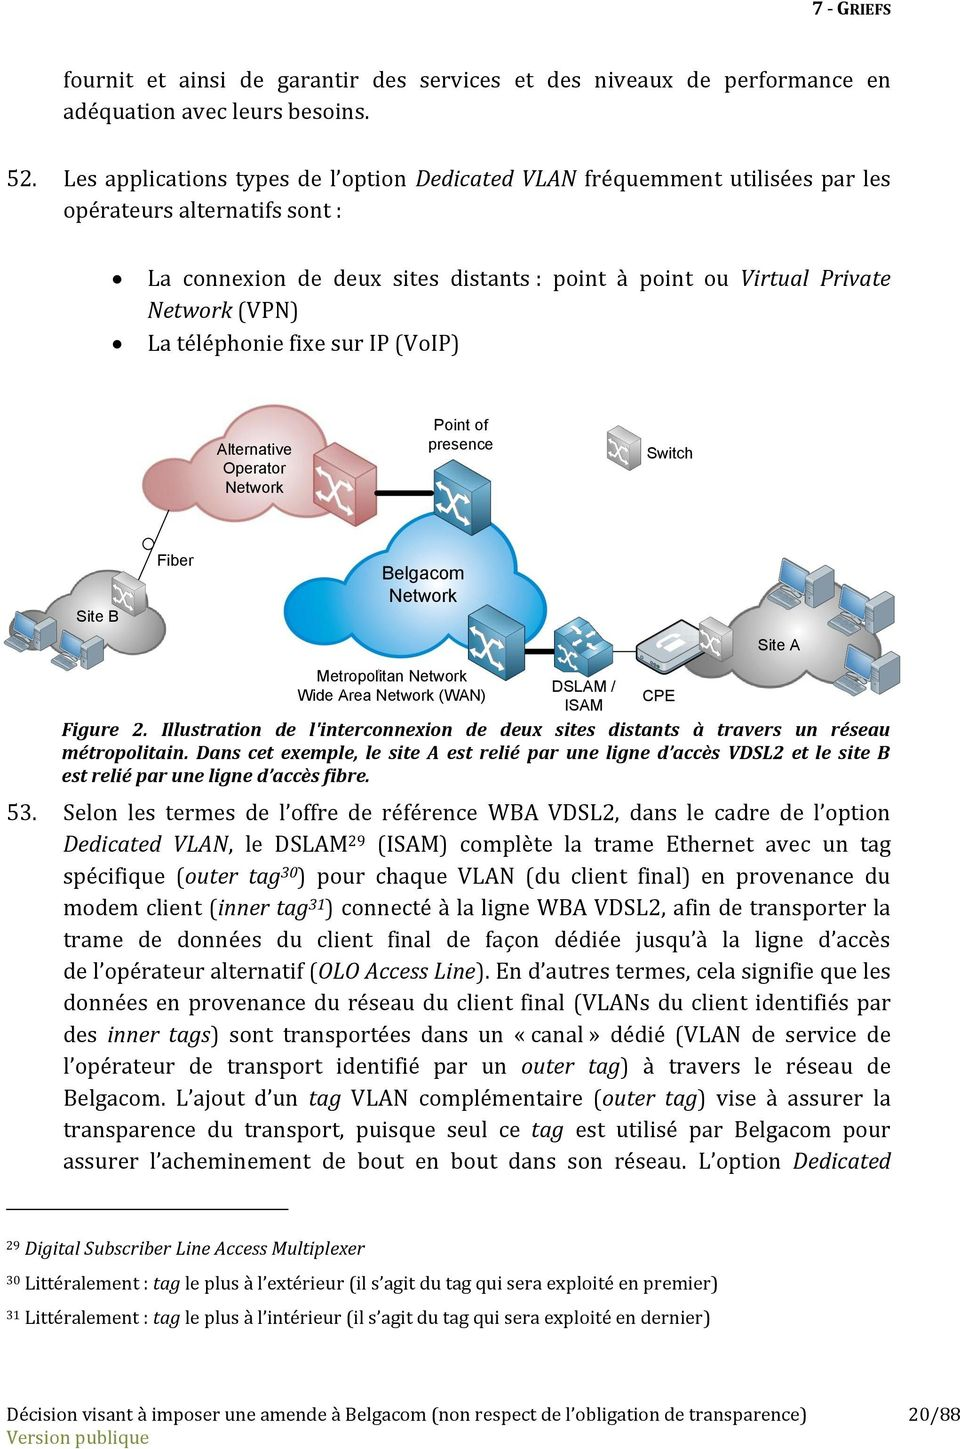 téléphonie fixe sur IP (VoIP) Alternative Operator Network Point of presence Switch Site B Fiber Belgacom Network Metropolitan Network Wide Area Network (WAN) DSLAM / ISAM CPE Site A Figure 2.